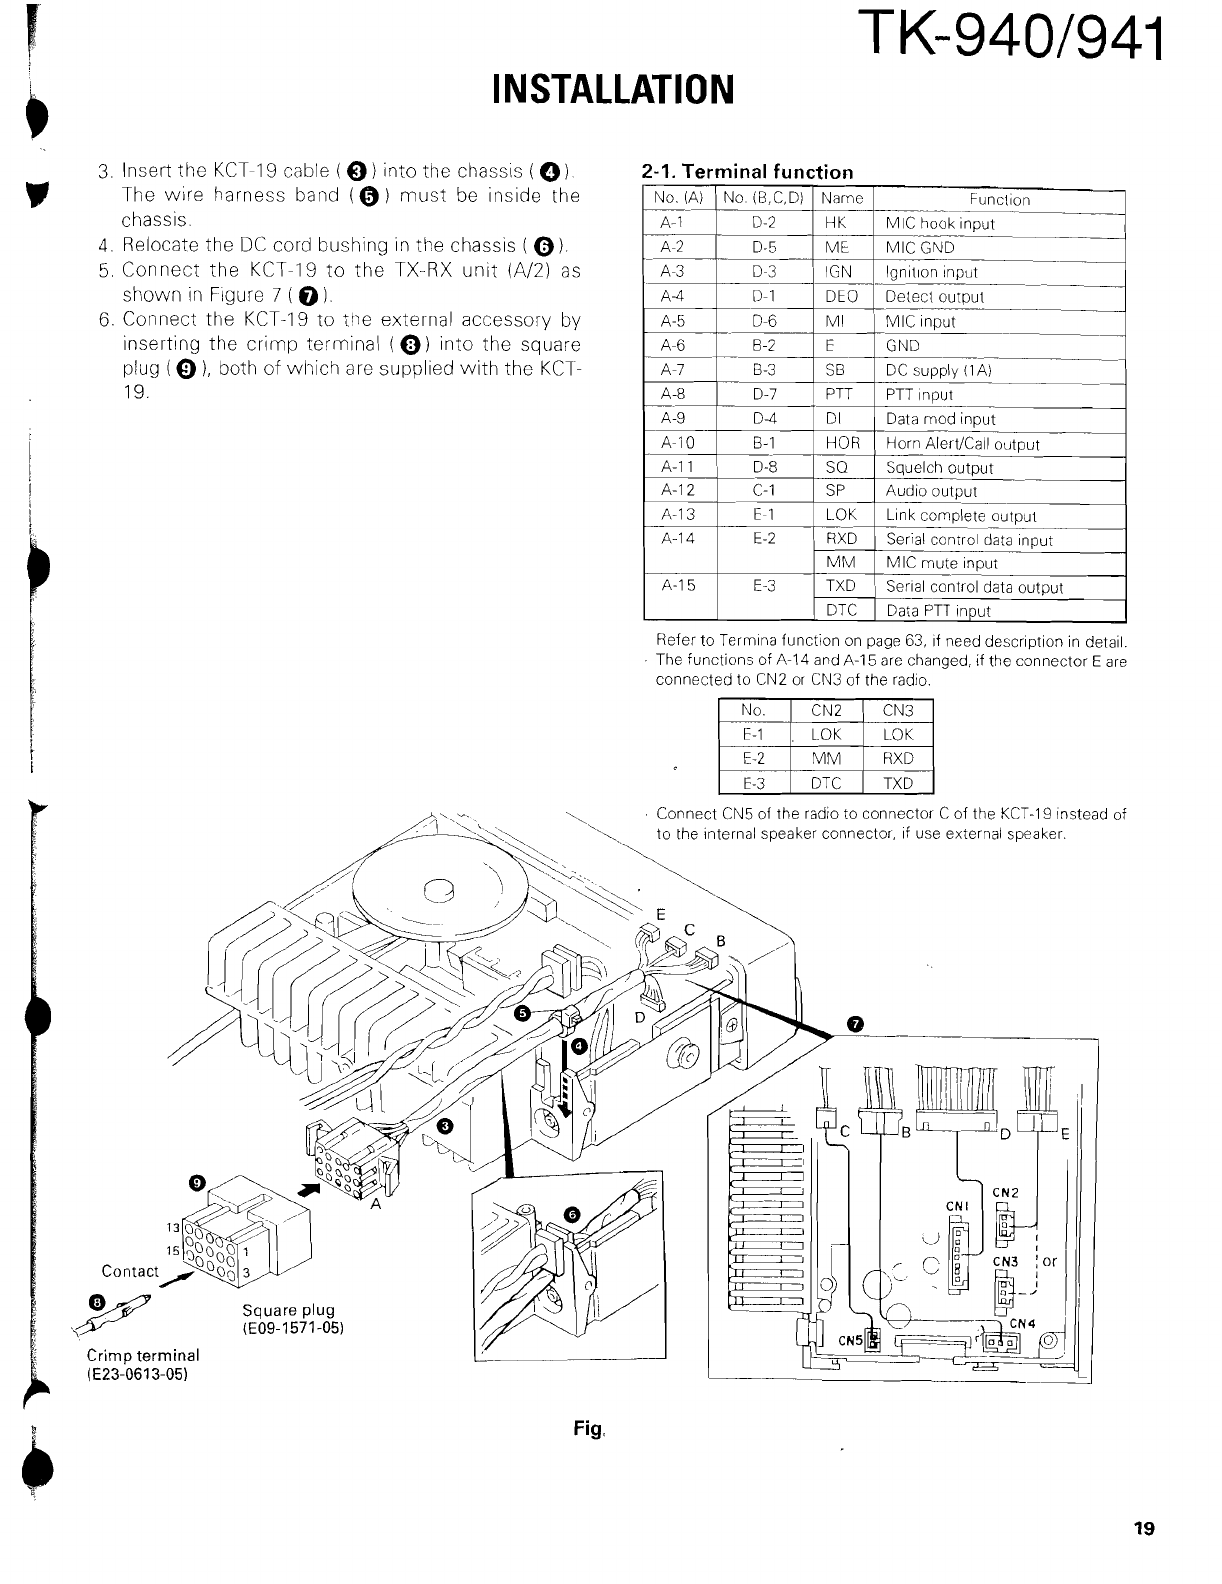 pioneer avh p3400bh wiring diagram with Kenwood Kvt 815dvd Wiring Diagram on Pioneer Avh X4500bt Wiring Diagram in addition Smittybilt Xrc8 Winch Wiring Diagram also Pioneer Avh 1400dvd Wiring Diagram together with Pioneer Avh Wiring Harness Diagram likewise Saab Wiring 1991.